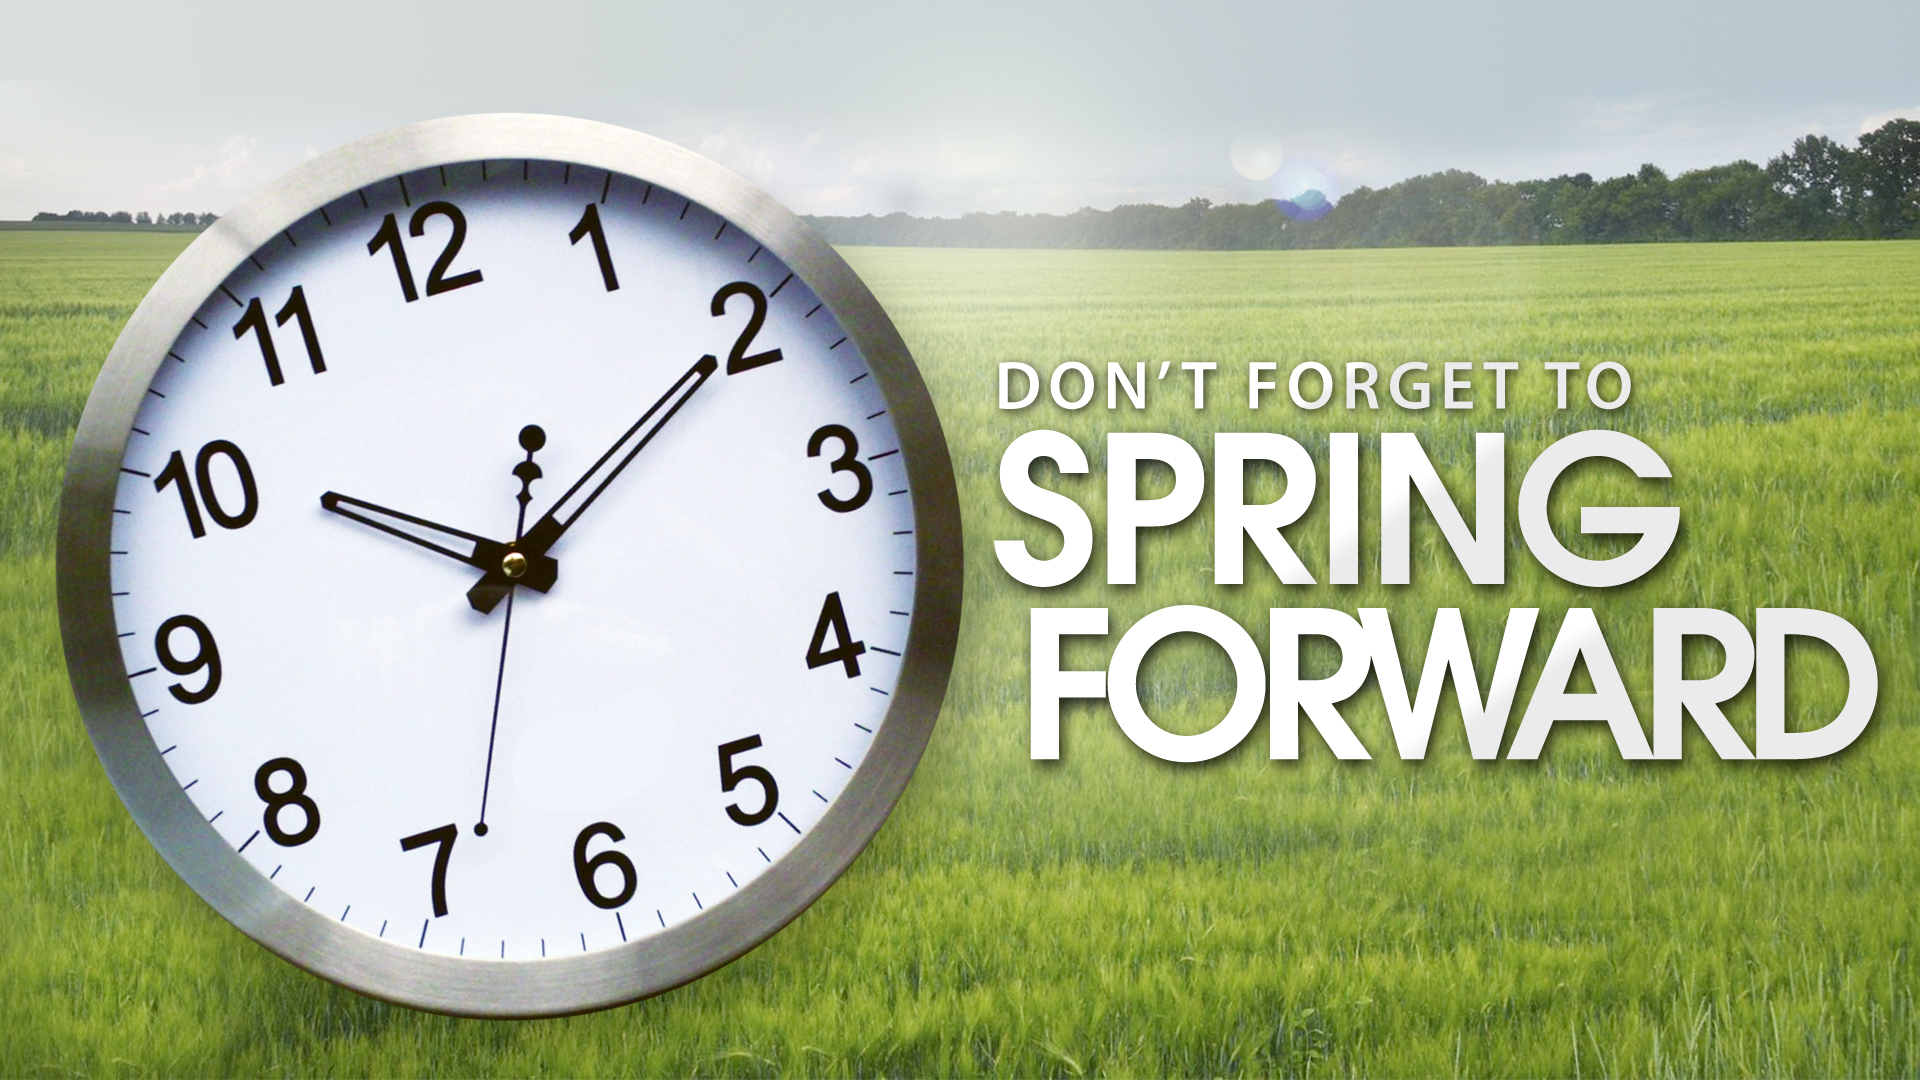 Be ReadyWisconsin when you Spring Forward